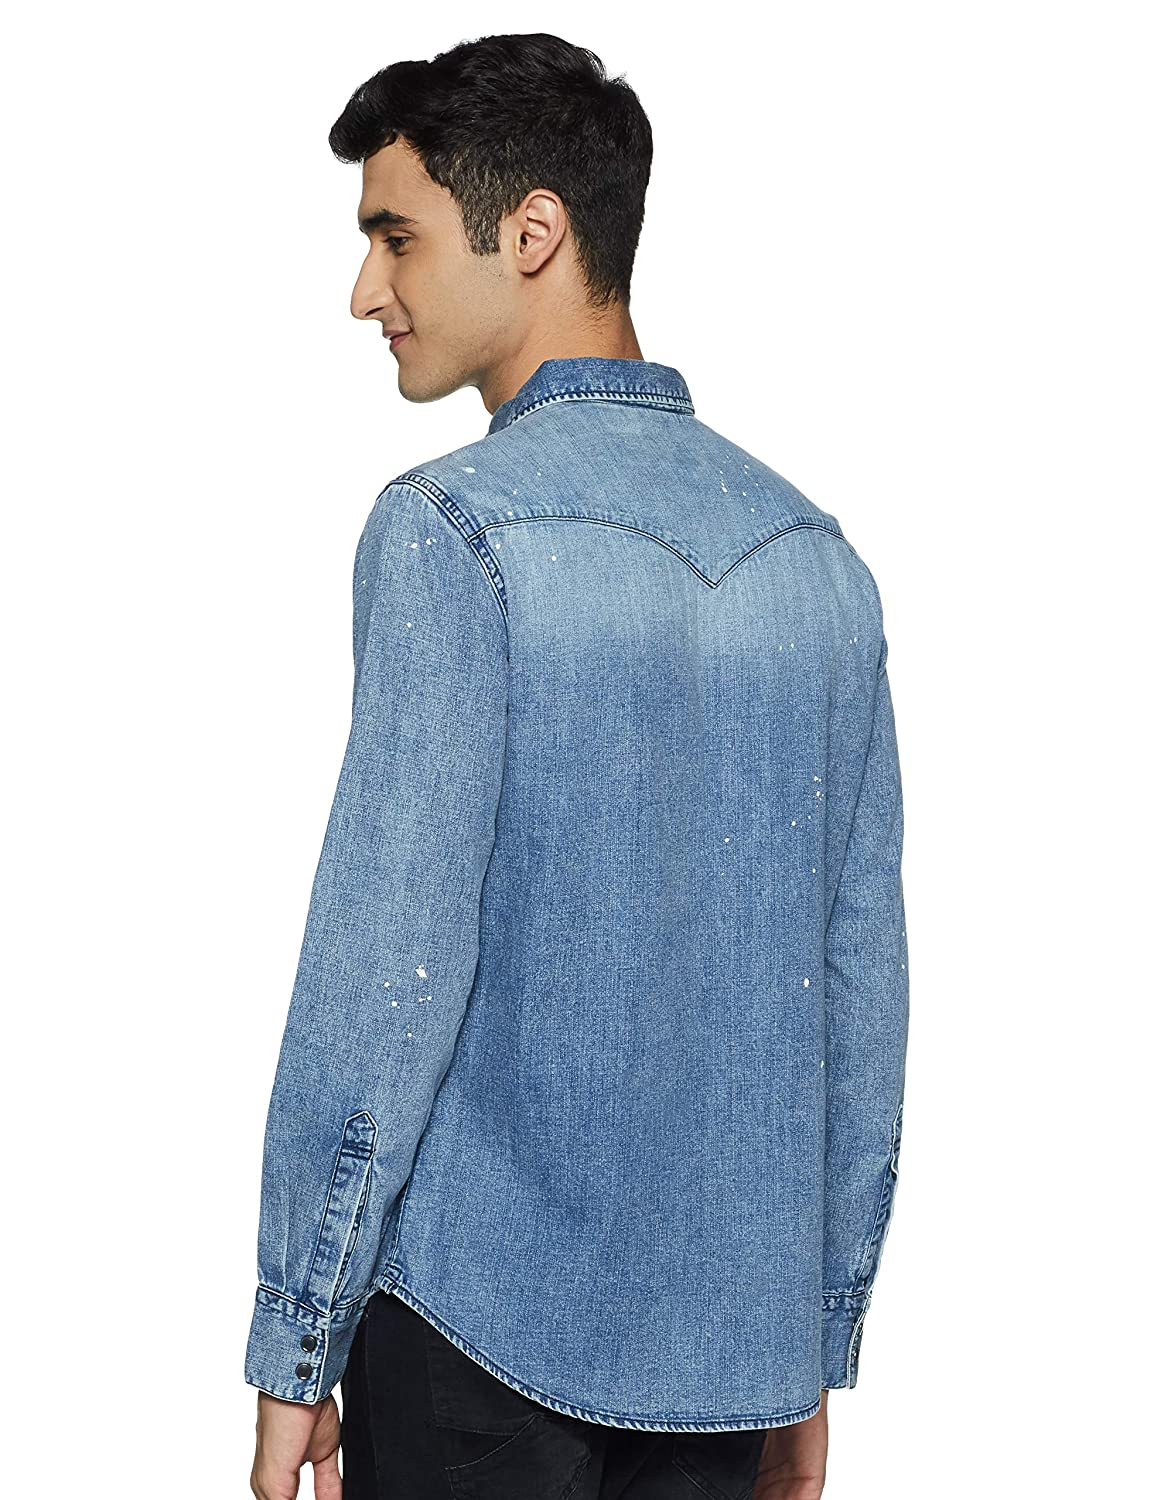 Buy Levi's Denim Clothes Upto 33% Discount For Men's Casual Shirts Online